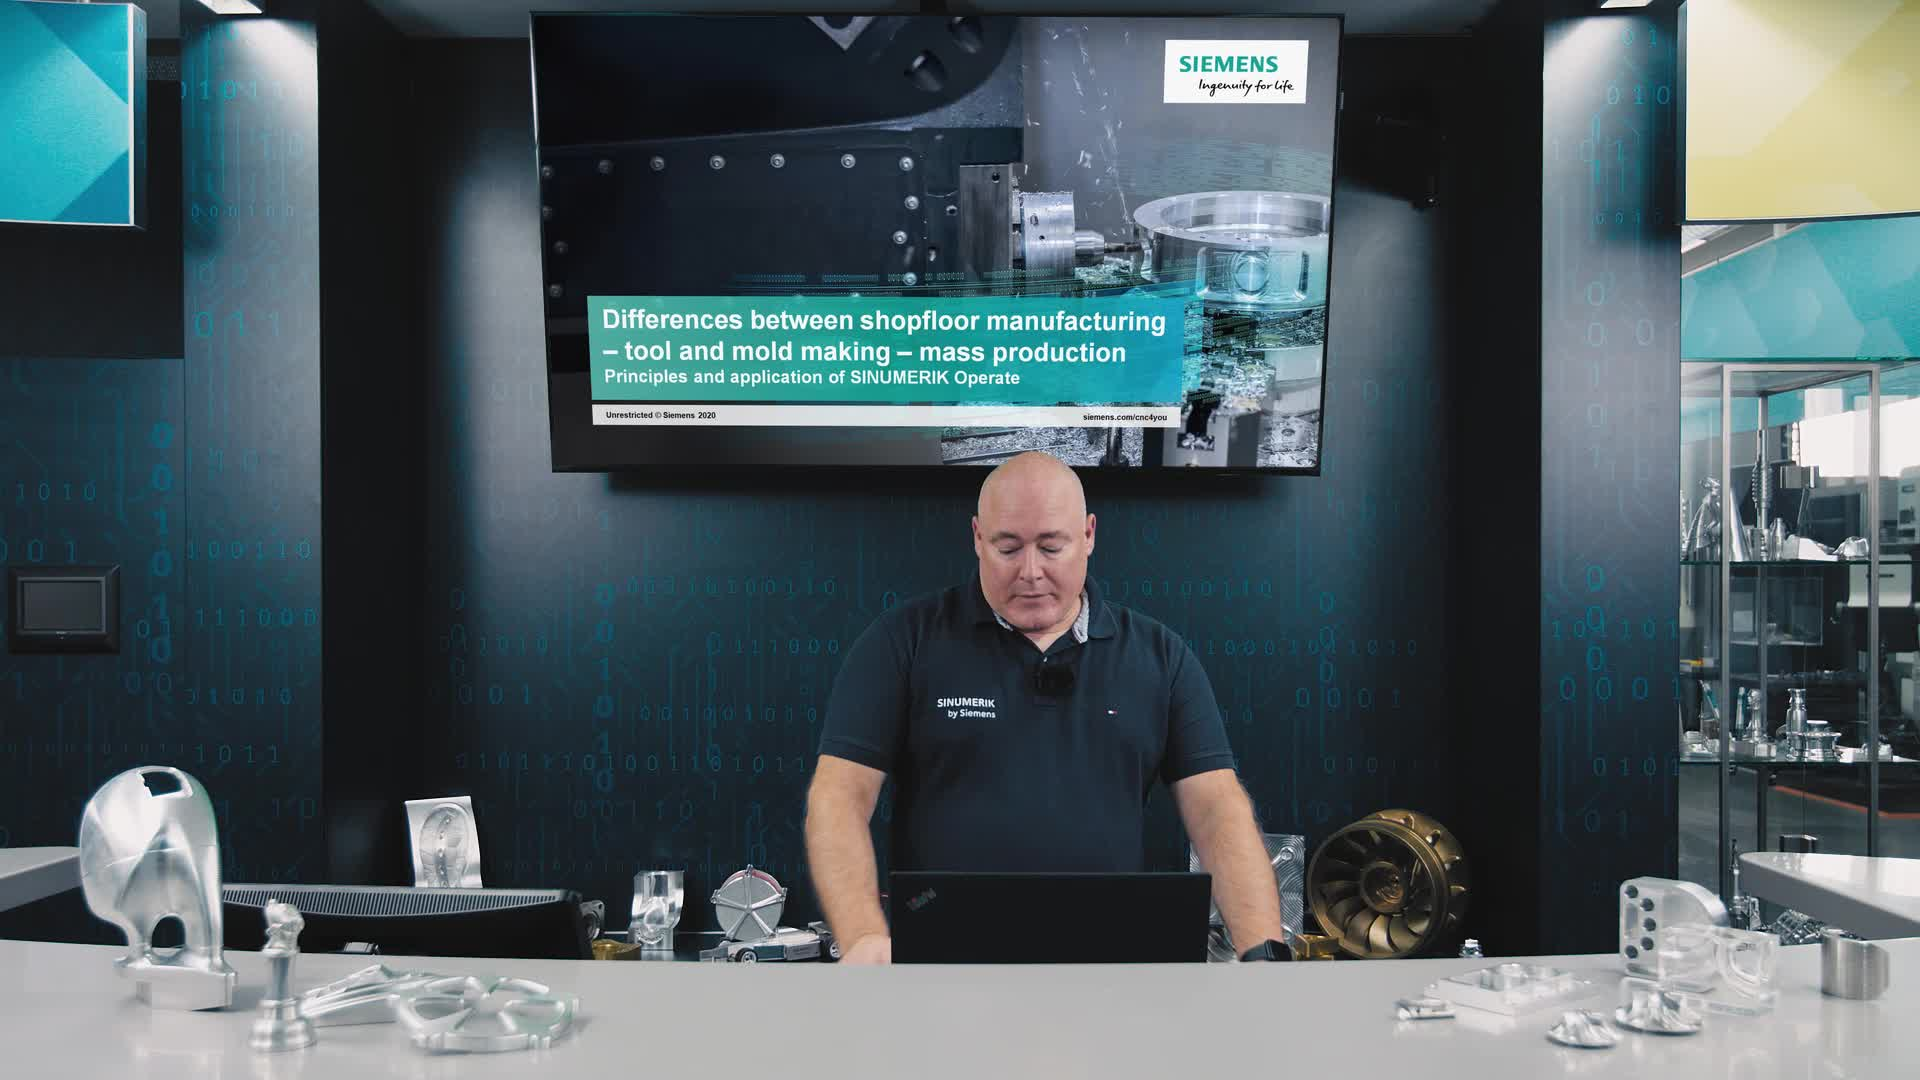 SINUMERIK live #12: Differences between shopfloor manufacturing, tool and mold making, mass production